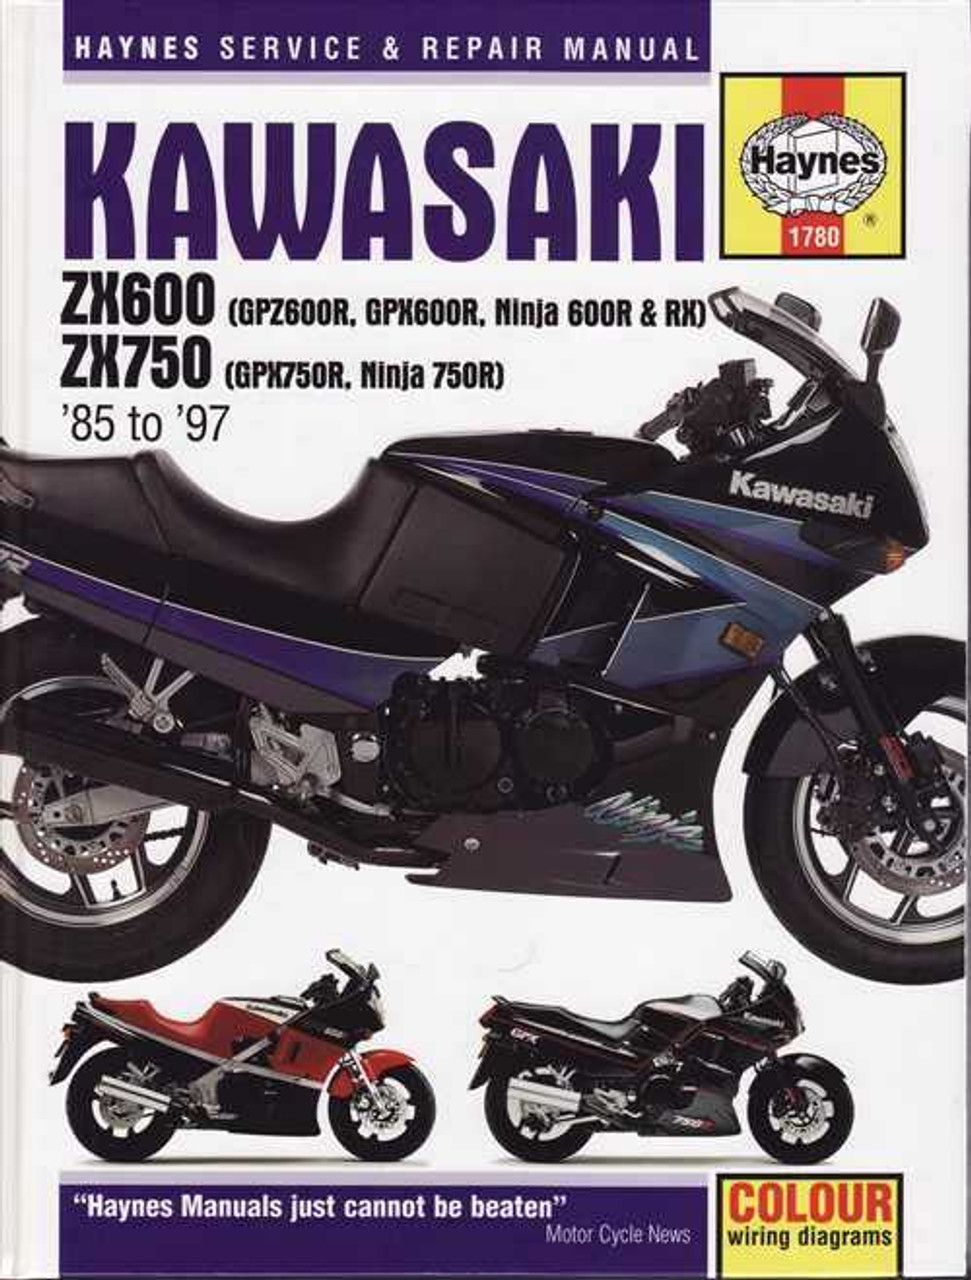 Kawasaki ZX600 ZX750 1985 1997 Workshop Manual